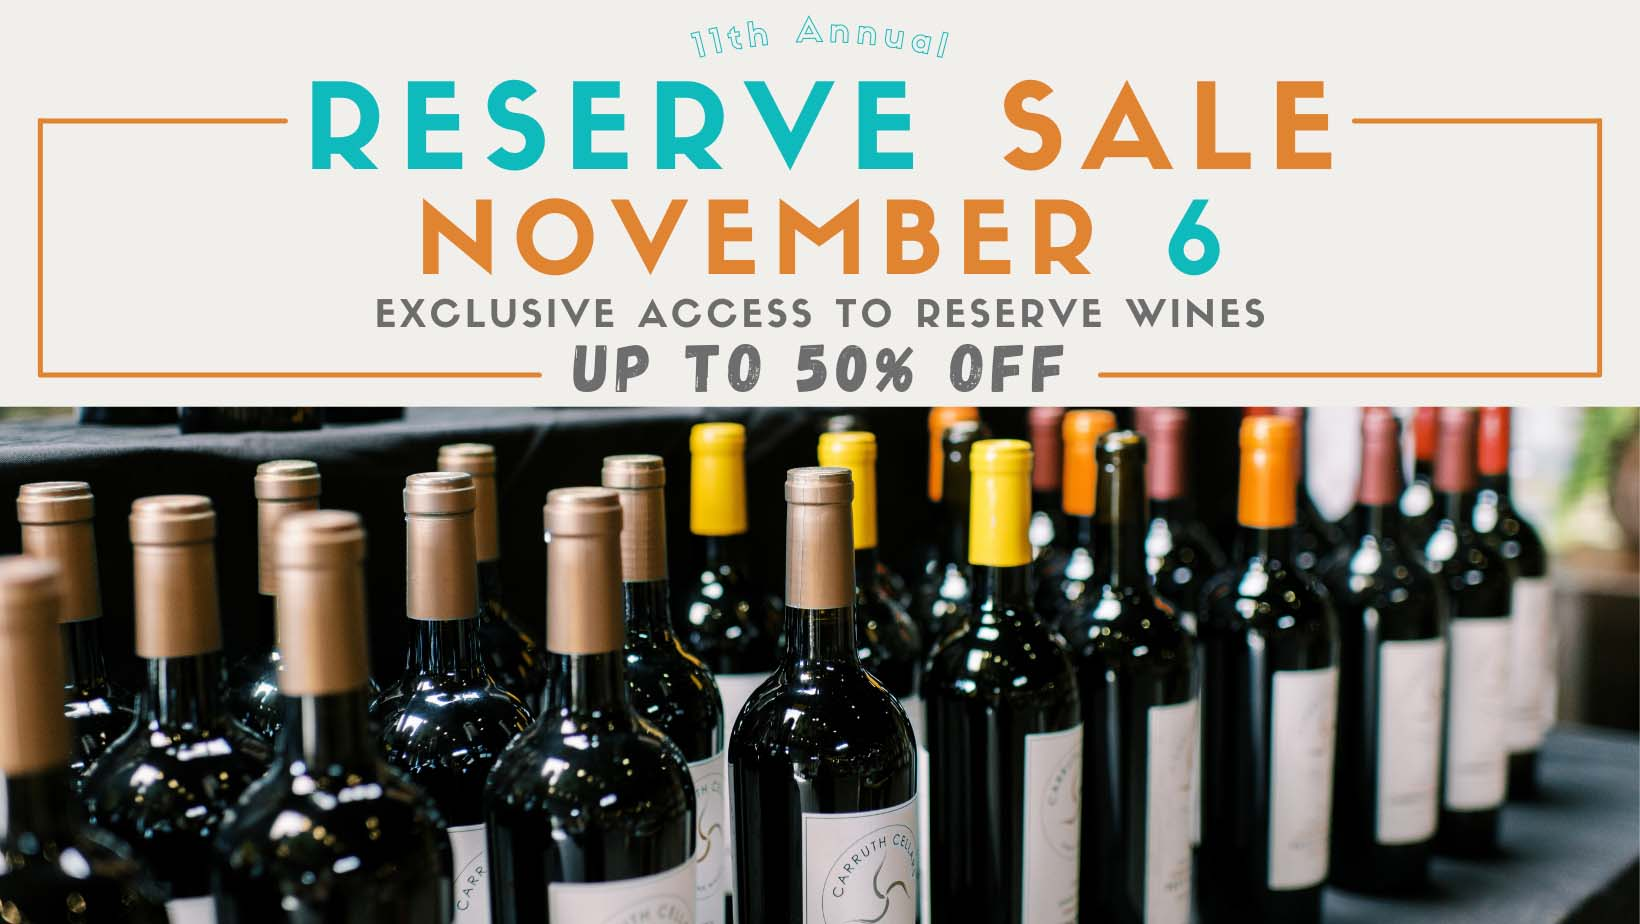 11th Annual Reserve Sale. November 6, 2021. Exclusive access to reserve wines and up to 50% off.